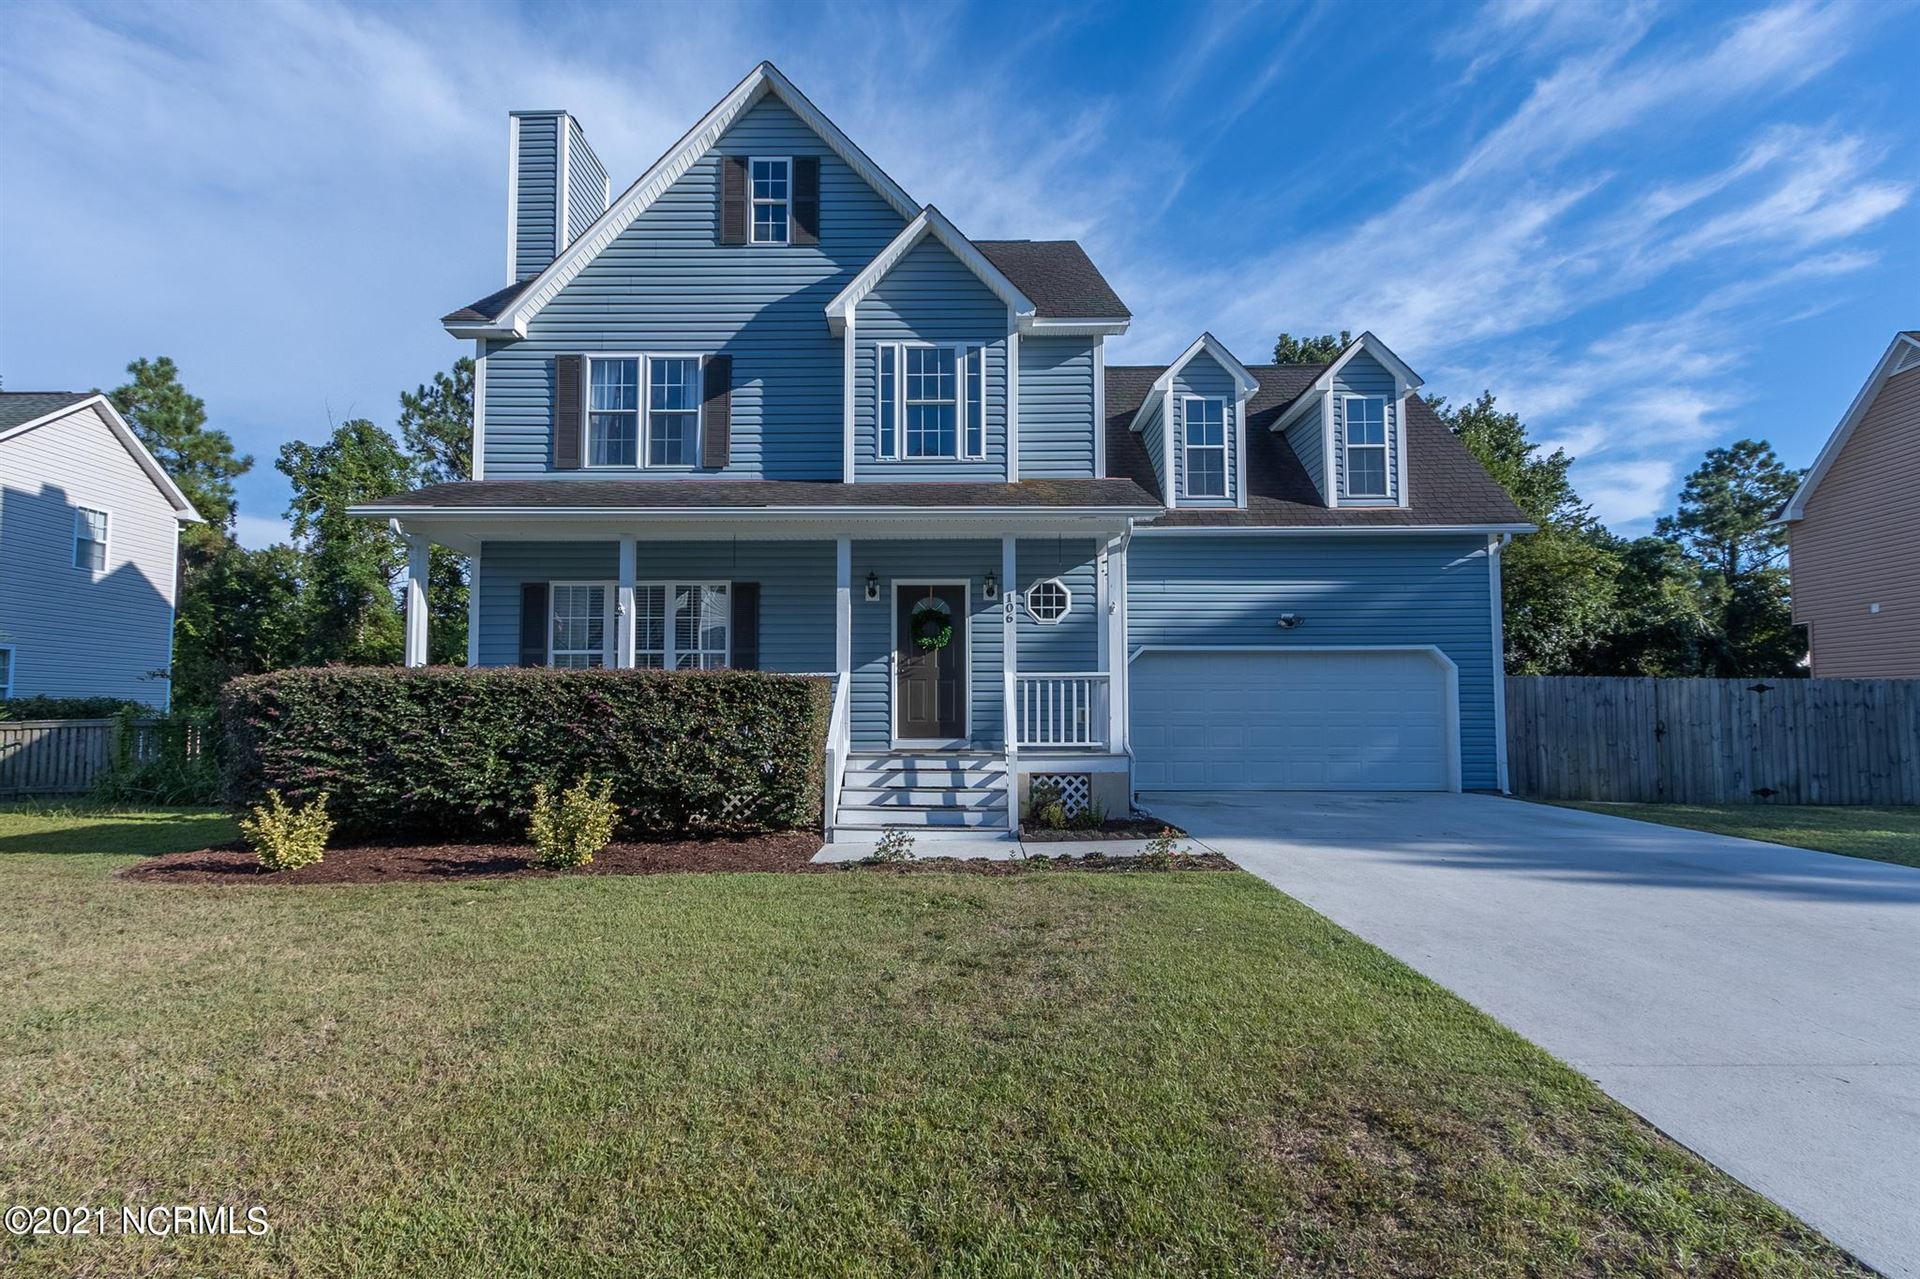 Photo of 106 Little Current Lane, Sneads Ferry, NC 28460 (MLS # 100291994)